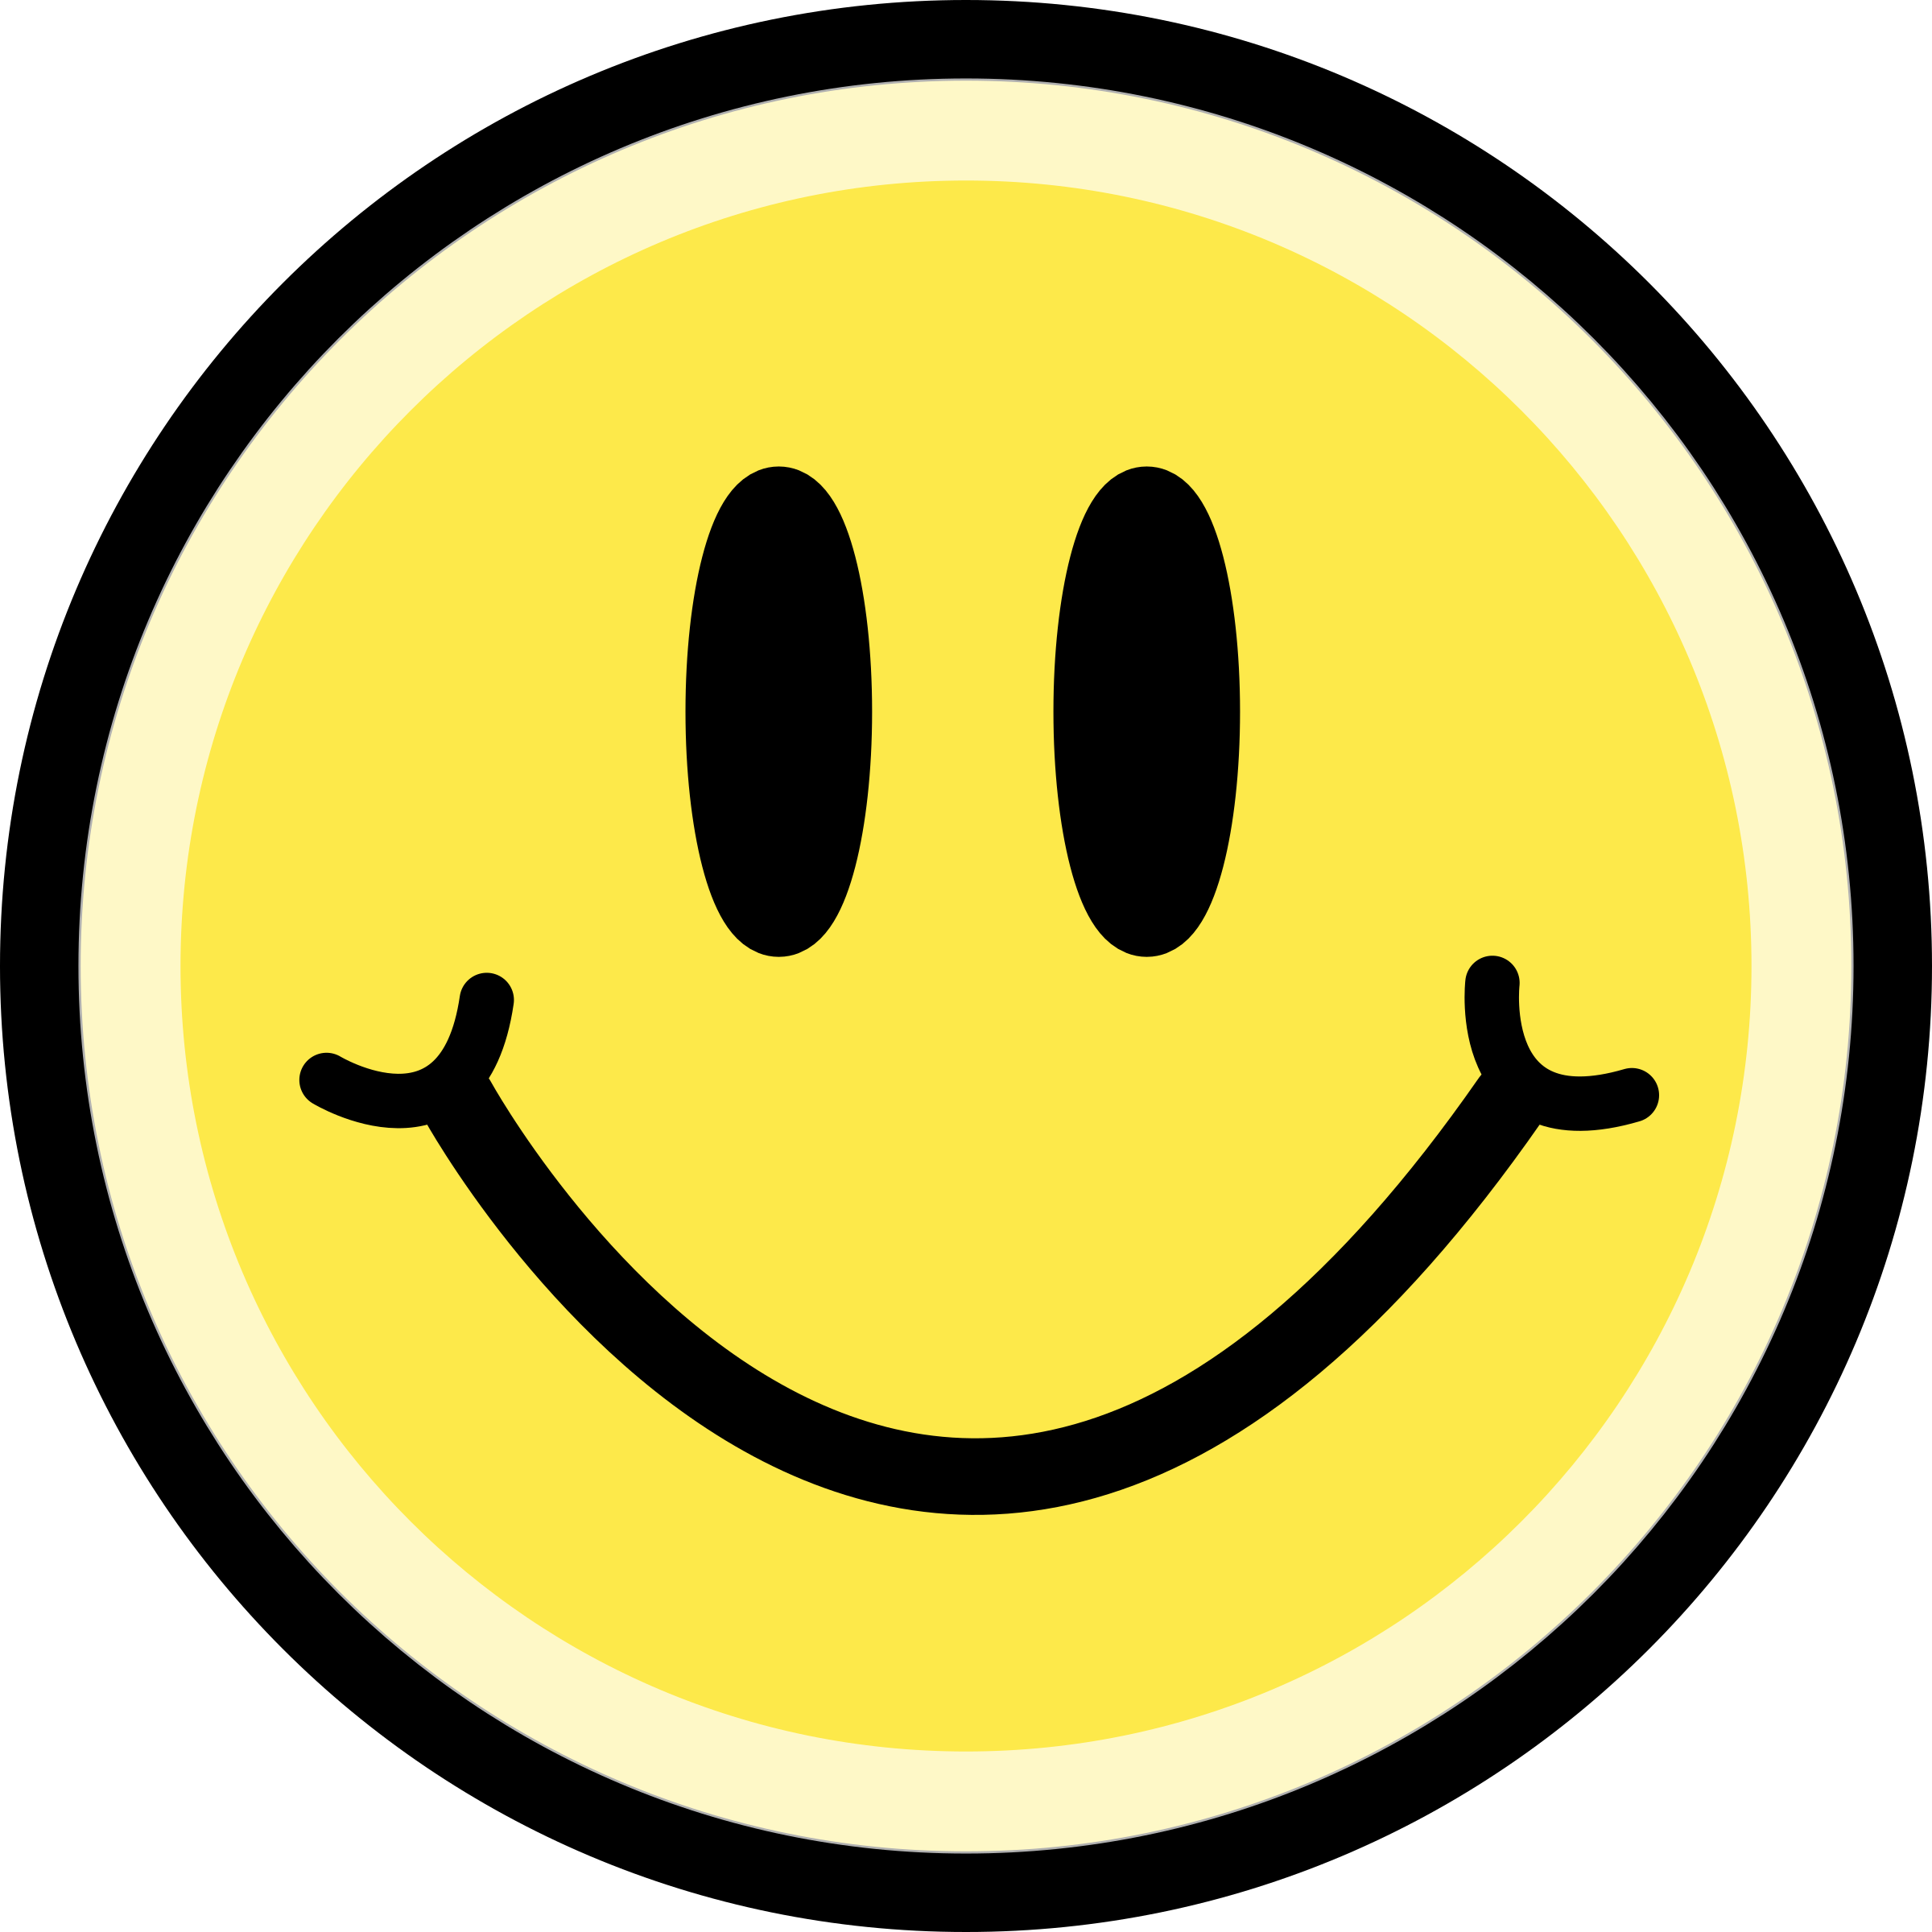 PNG Smiling Face - 84552